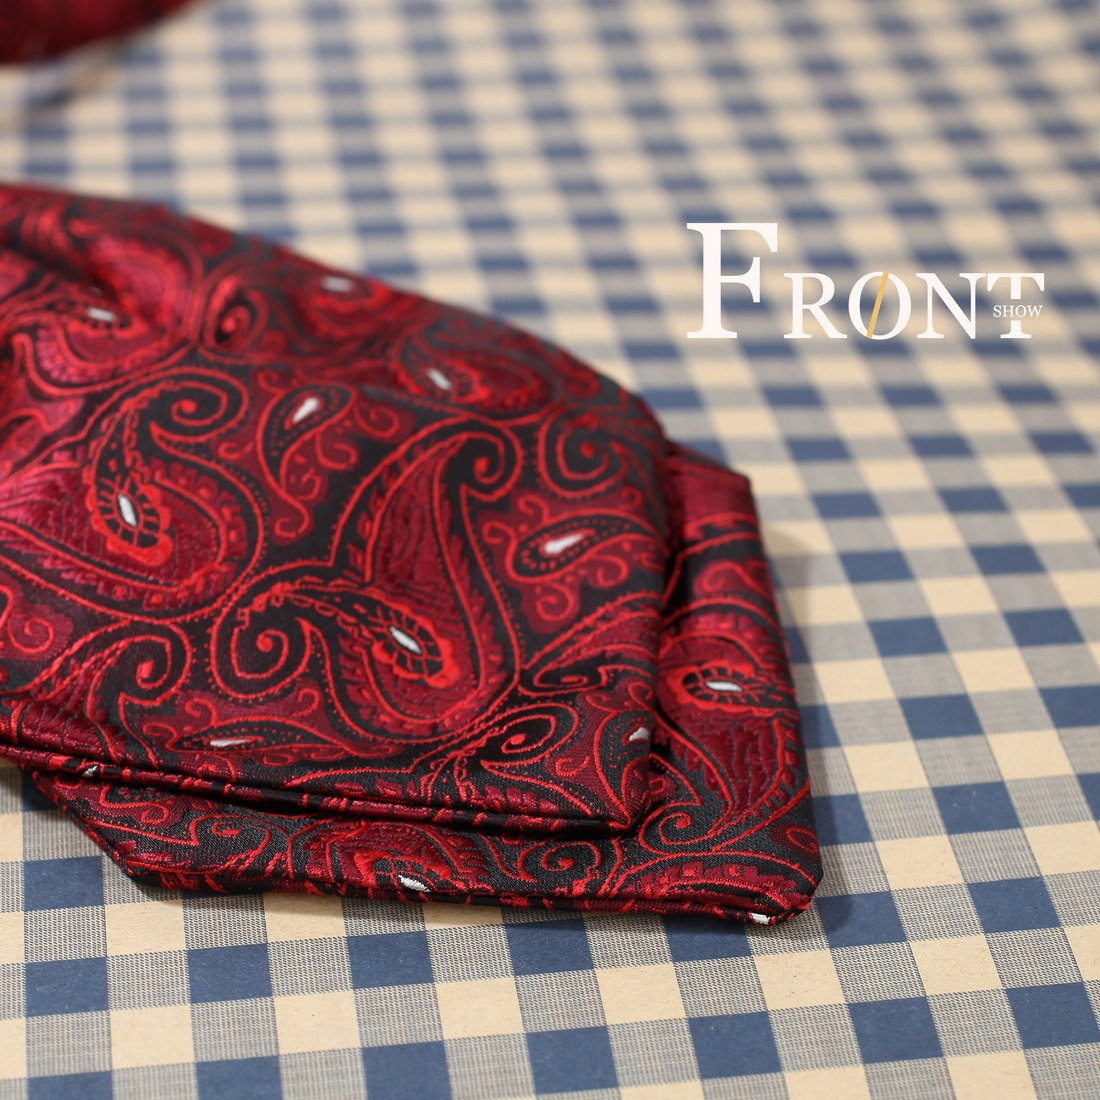 ERB1B07C Business Beautiful Gift Idea Patterned Ascot Best Mens Red Microfiber Perfect Accessories Gift for Wedding By Epoint